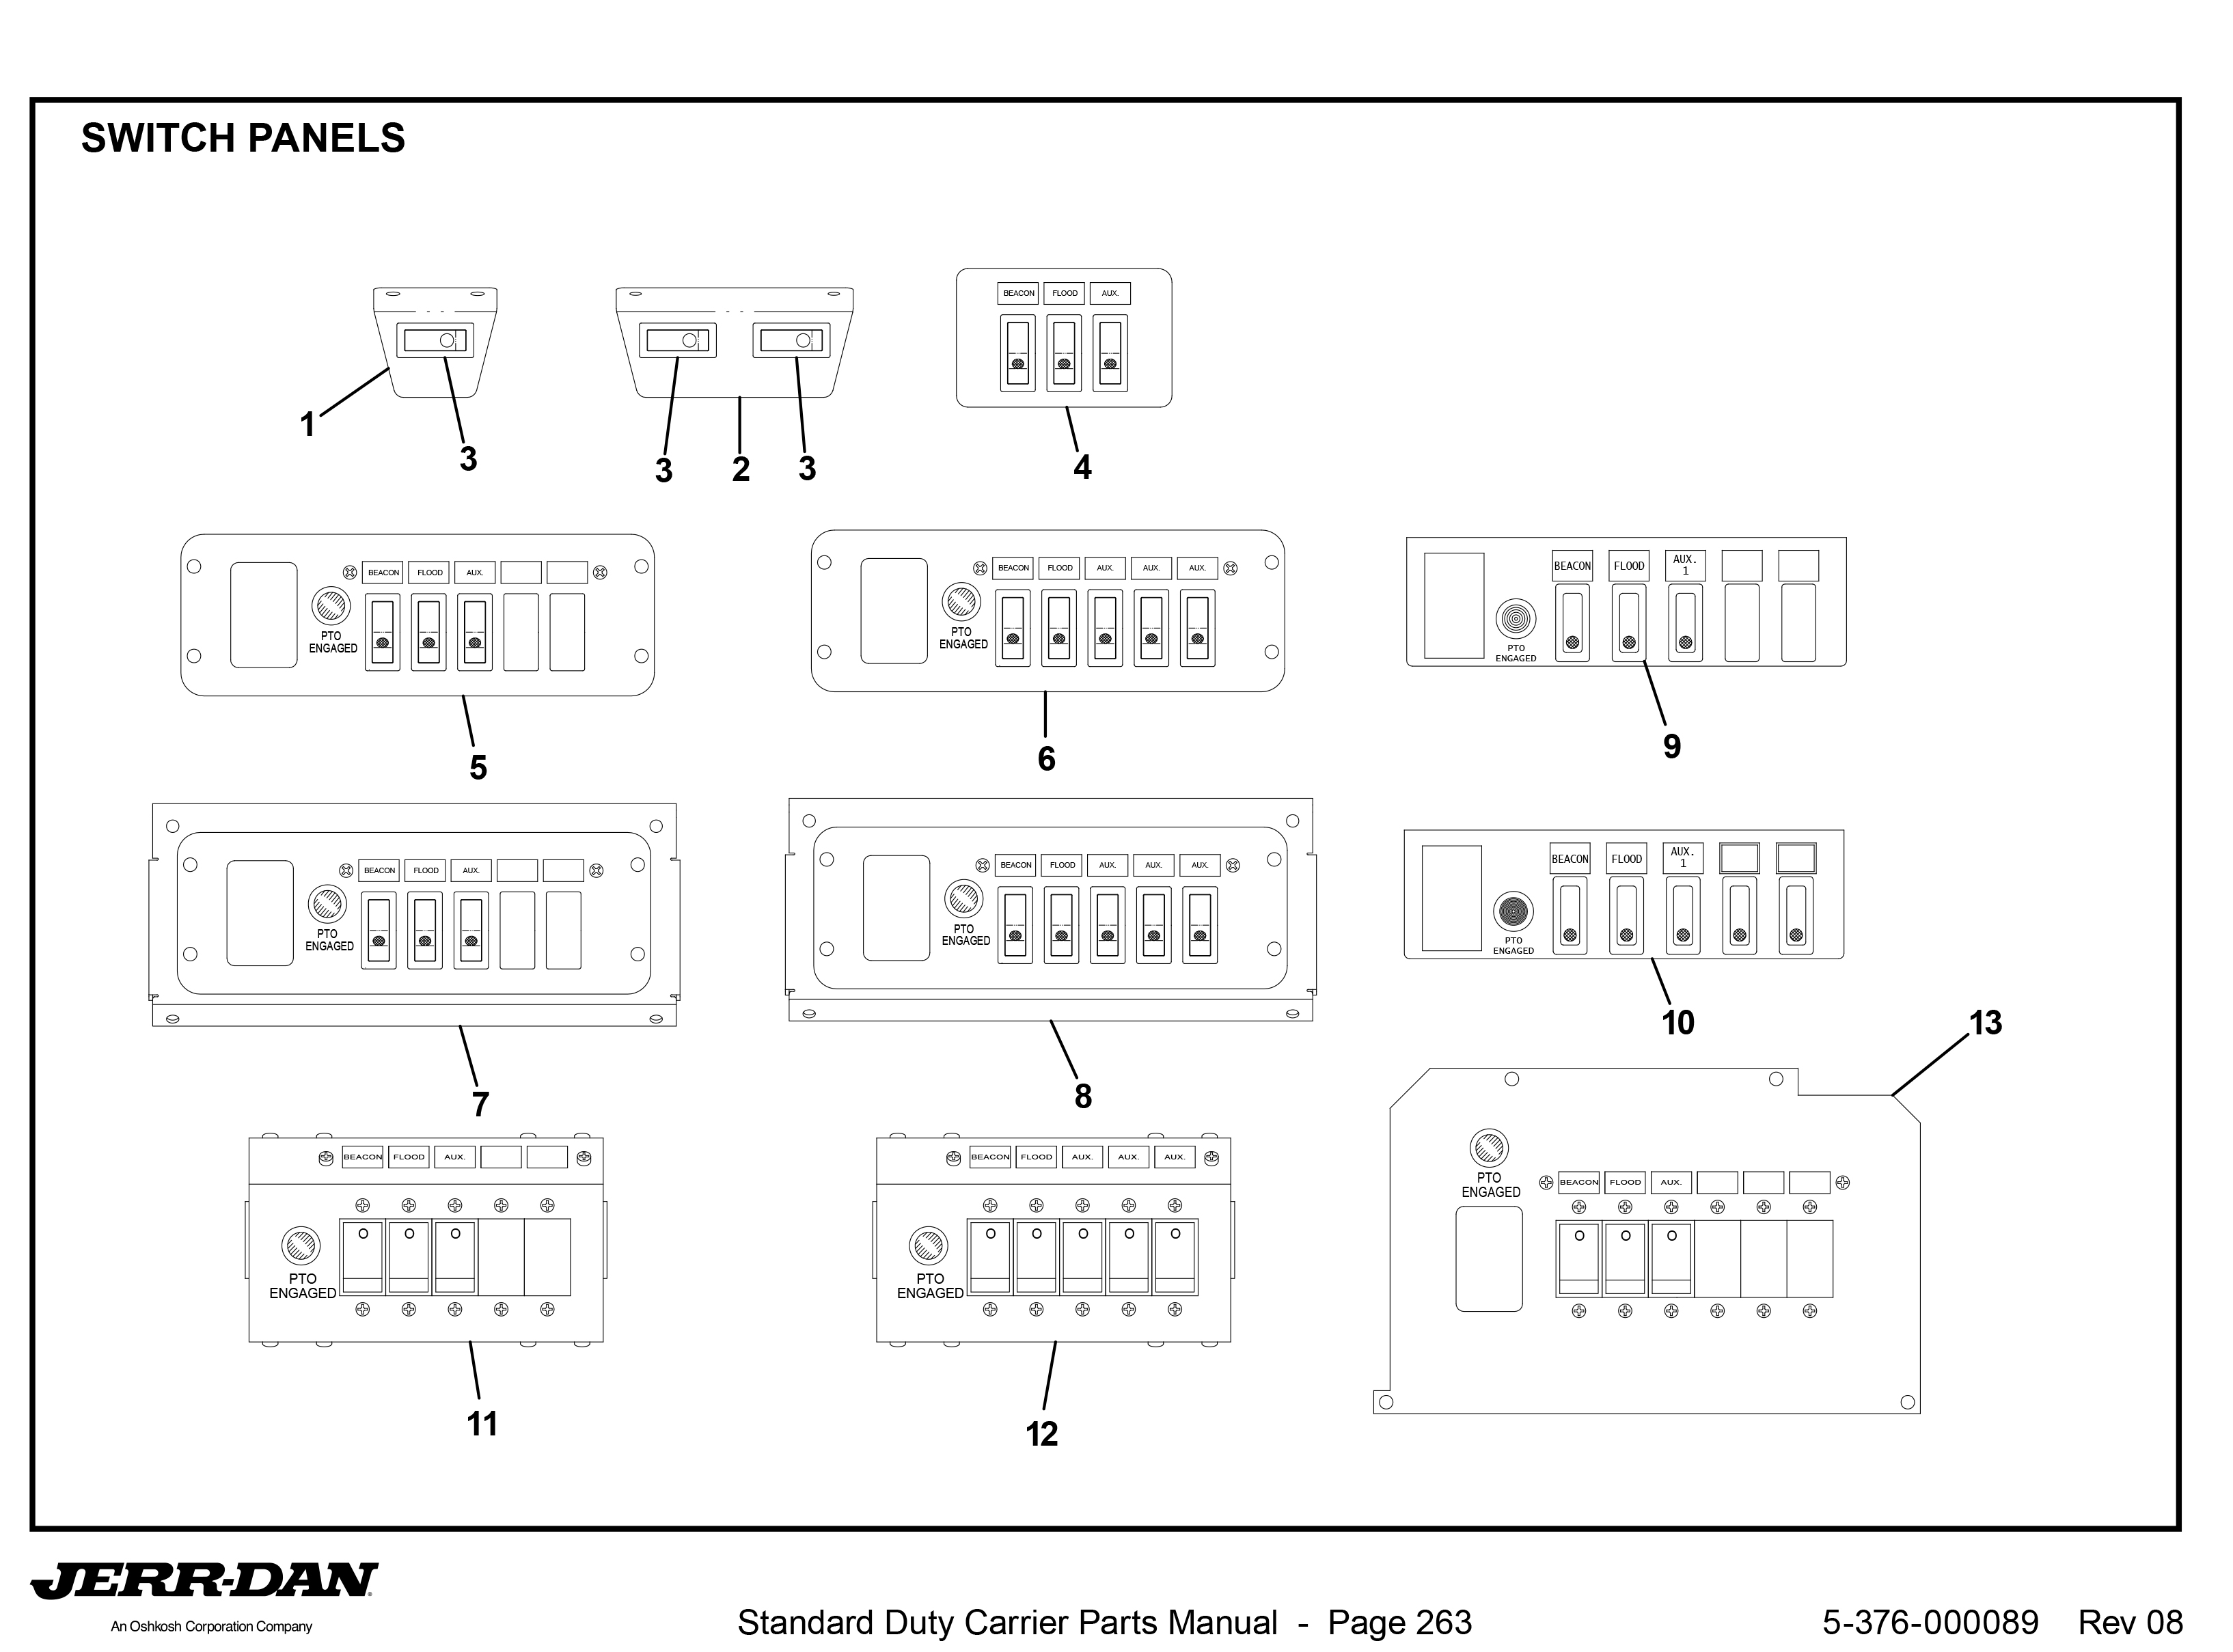 p 10311 Diagram 127 switch panels detroit wrecker sales jerr dan light bar wiring diagram at gsmportal.co